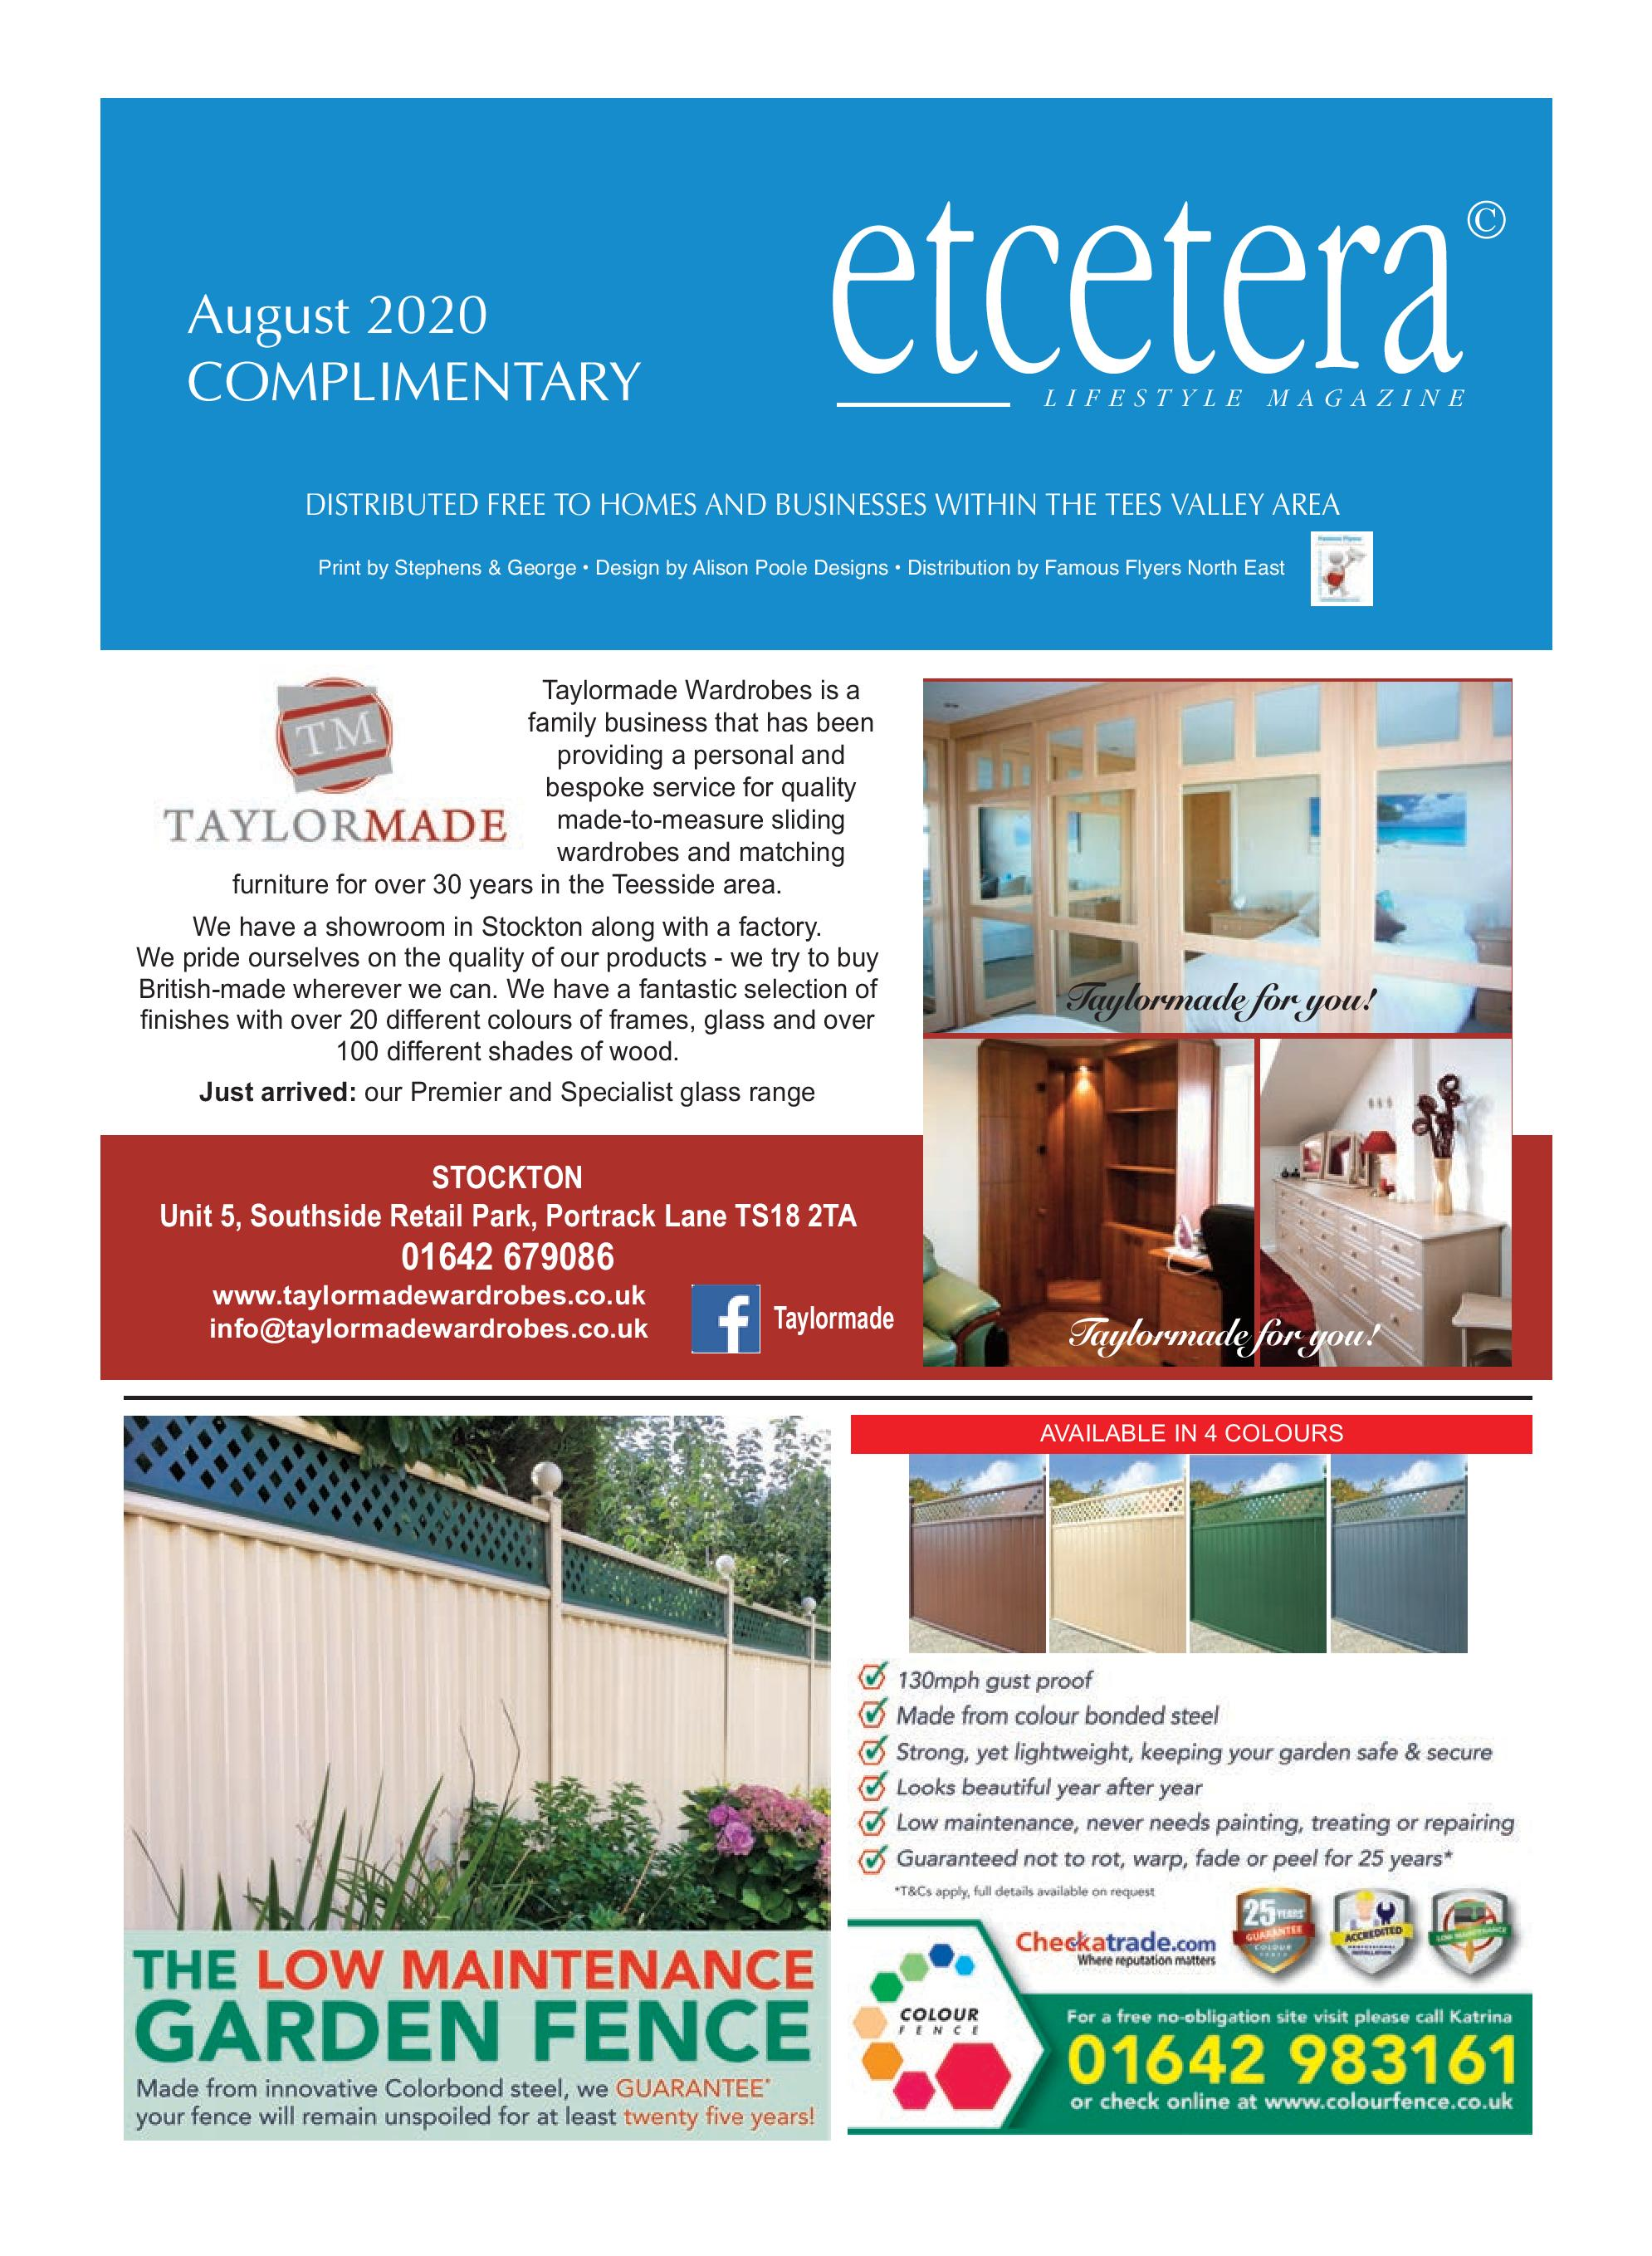 Etcetera Lifestyle Magazine - August 2020